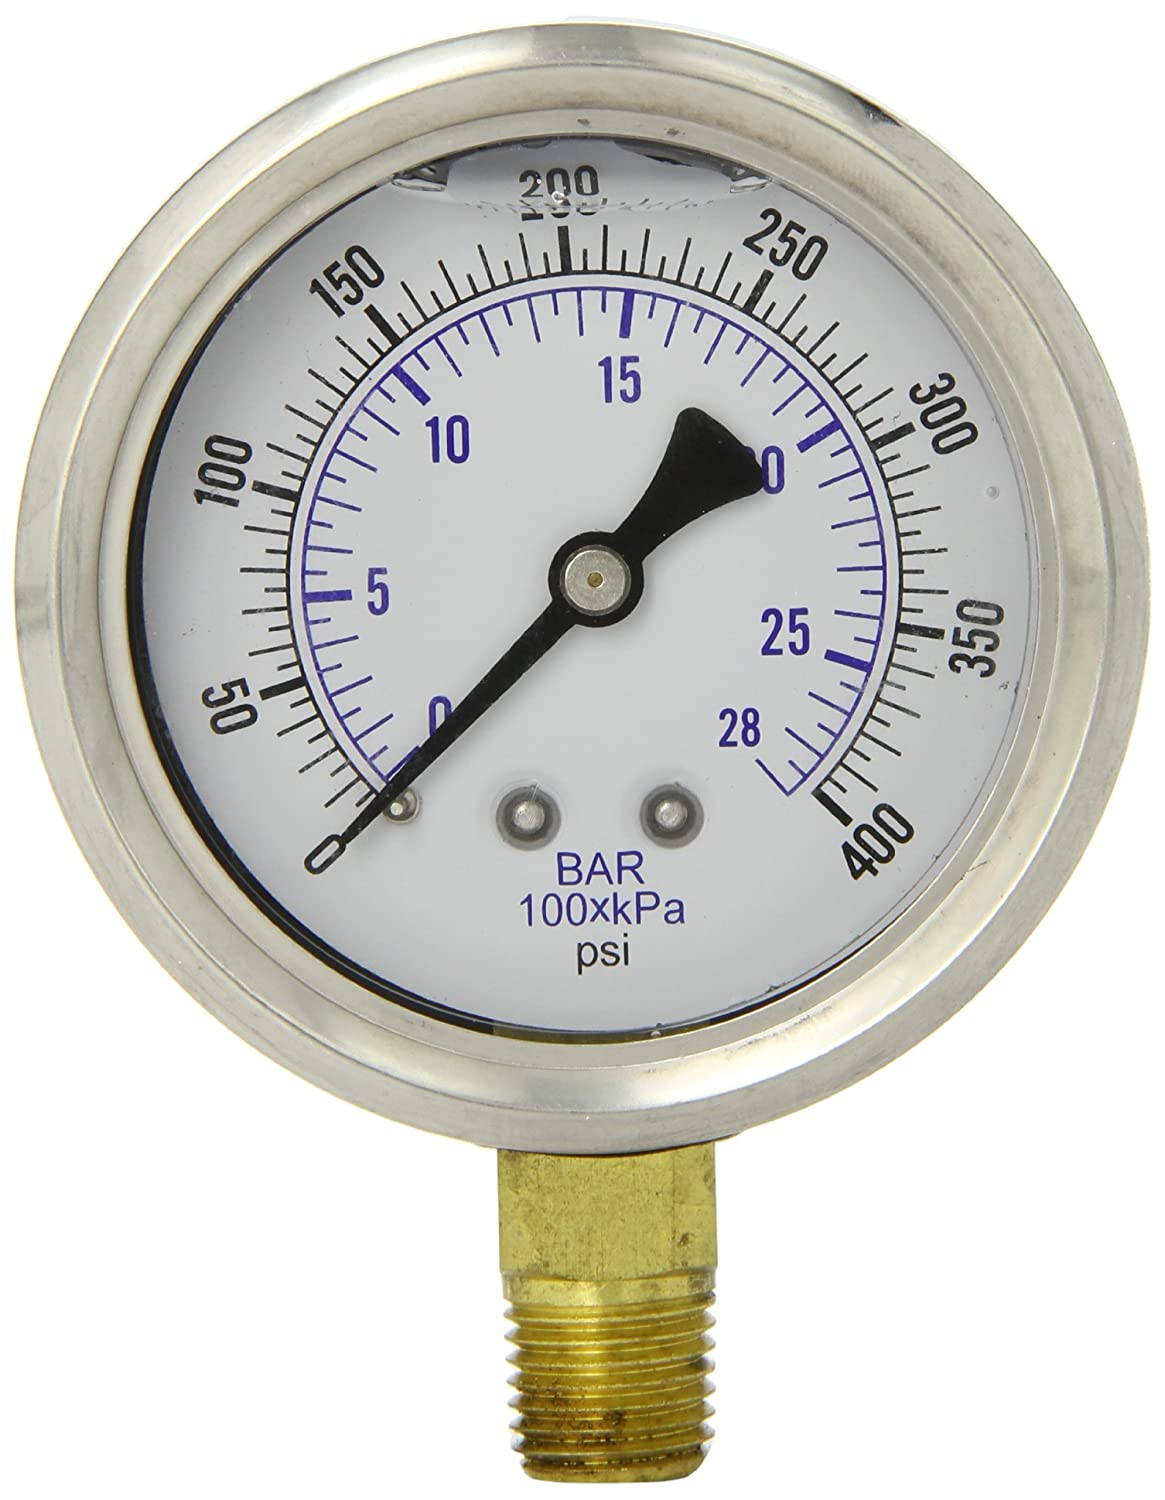 PIC Gauge PRO 201L 254I Glycerin Filled Industrial Bottom Mount Pressure Gauge with Stainless Steel Case Brass Internals Plastic Lens 2 1 2 Dial Size 1 4 Male NPT 0 400 psi